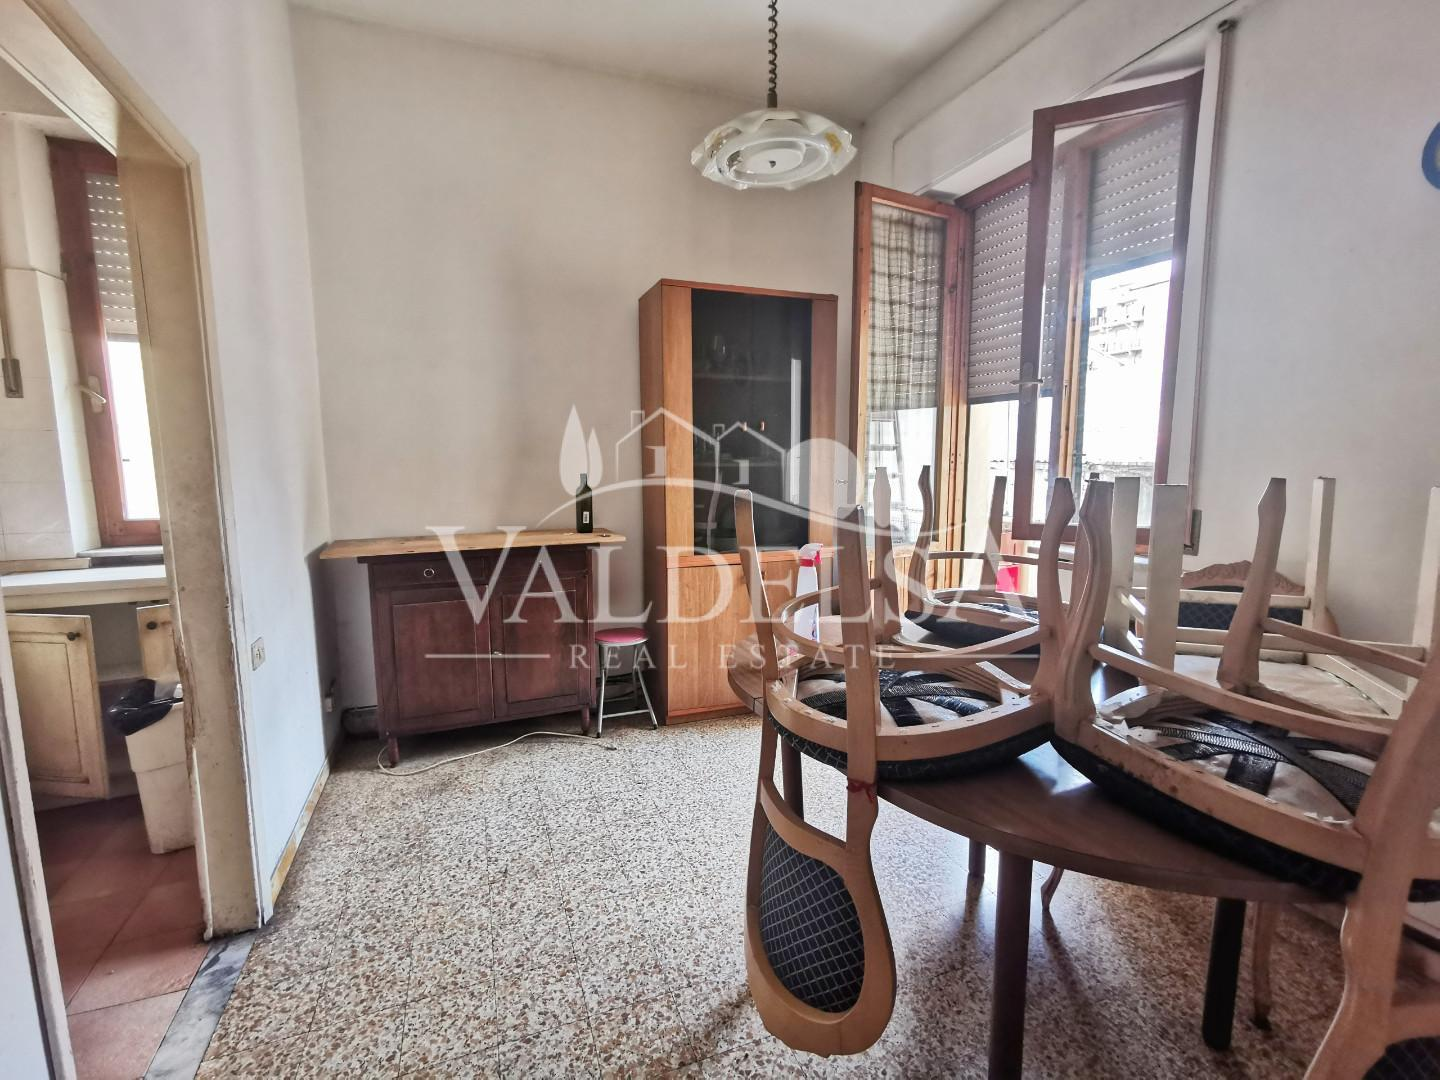 Apartment for sale, ref. 649